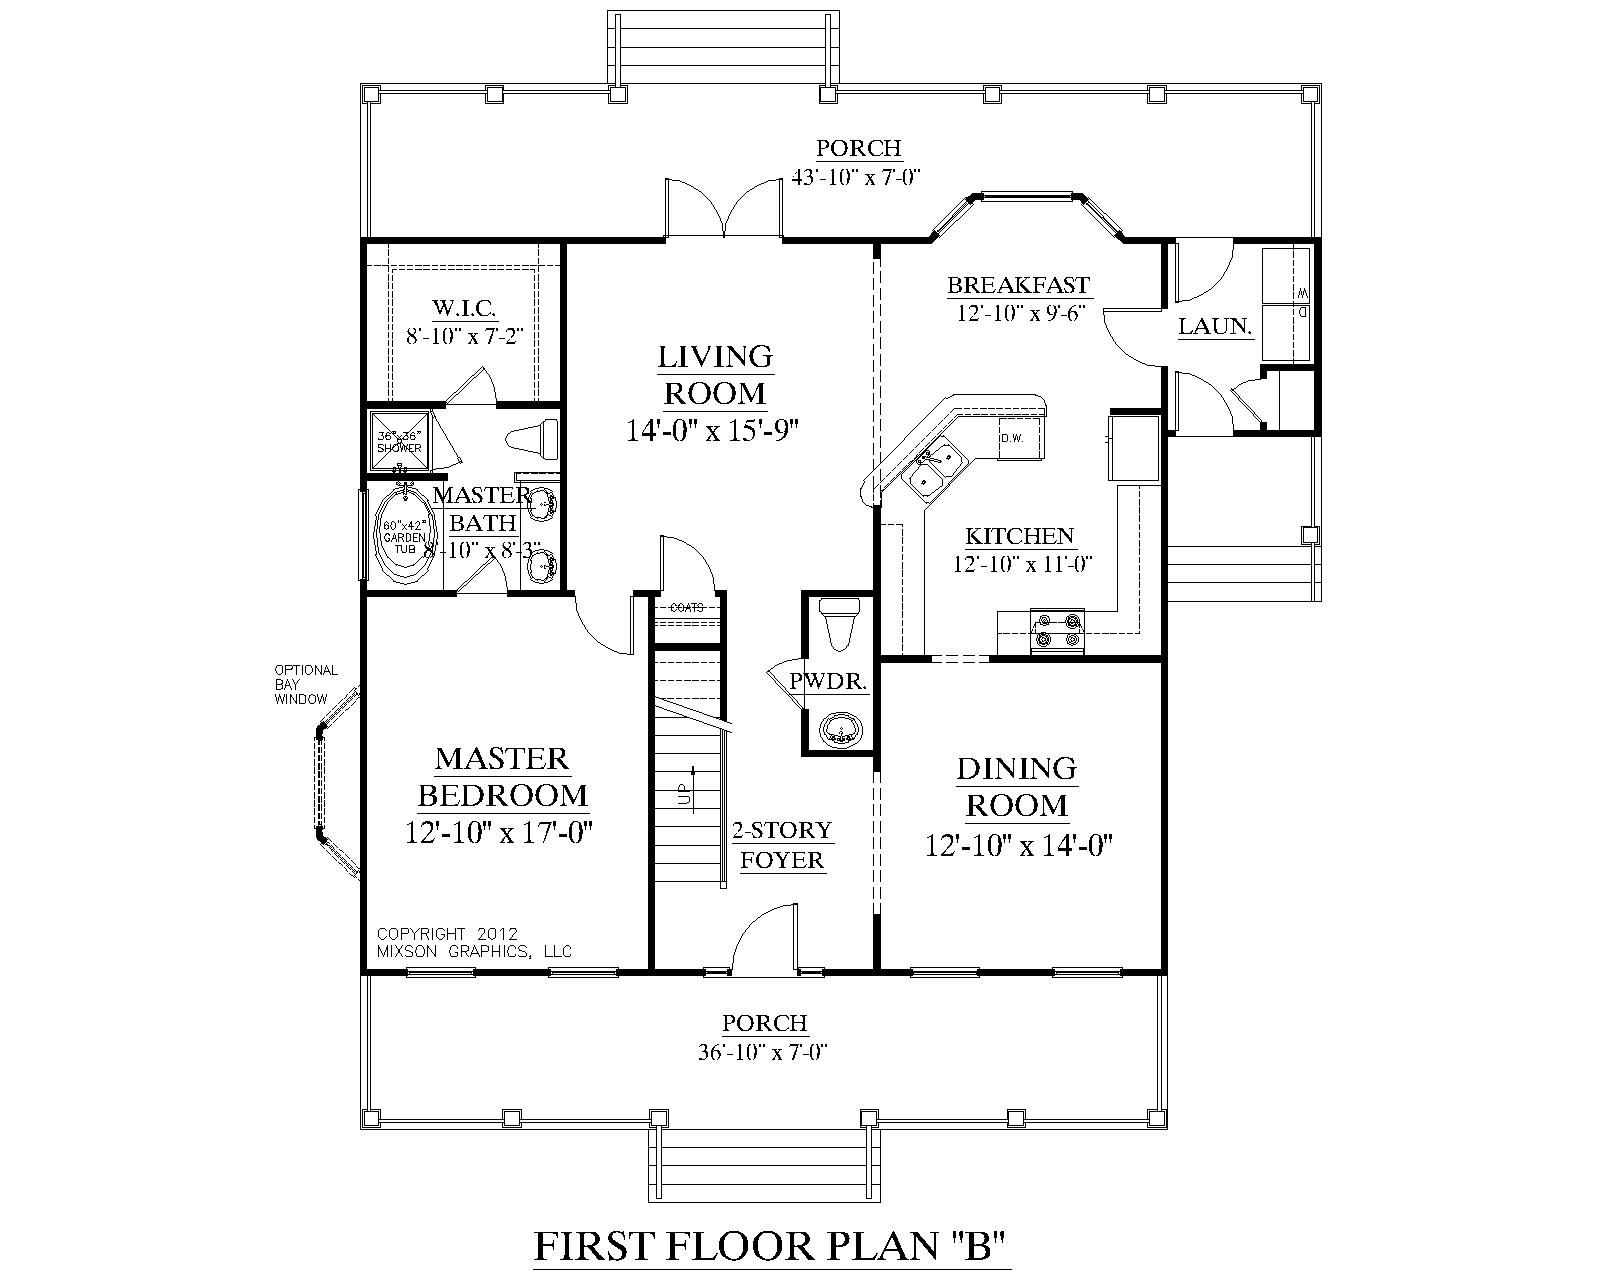 Pin On 1 1 2 Story House Plans